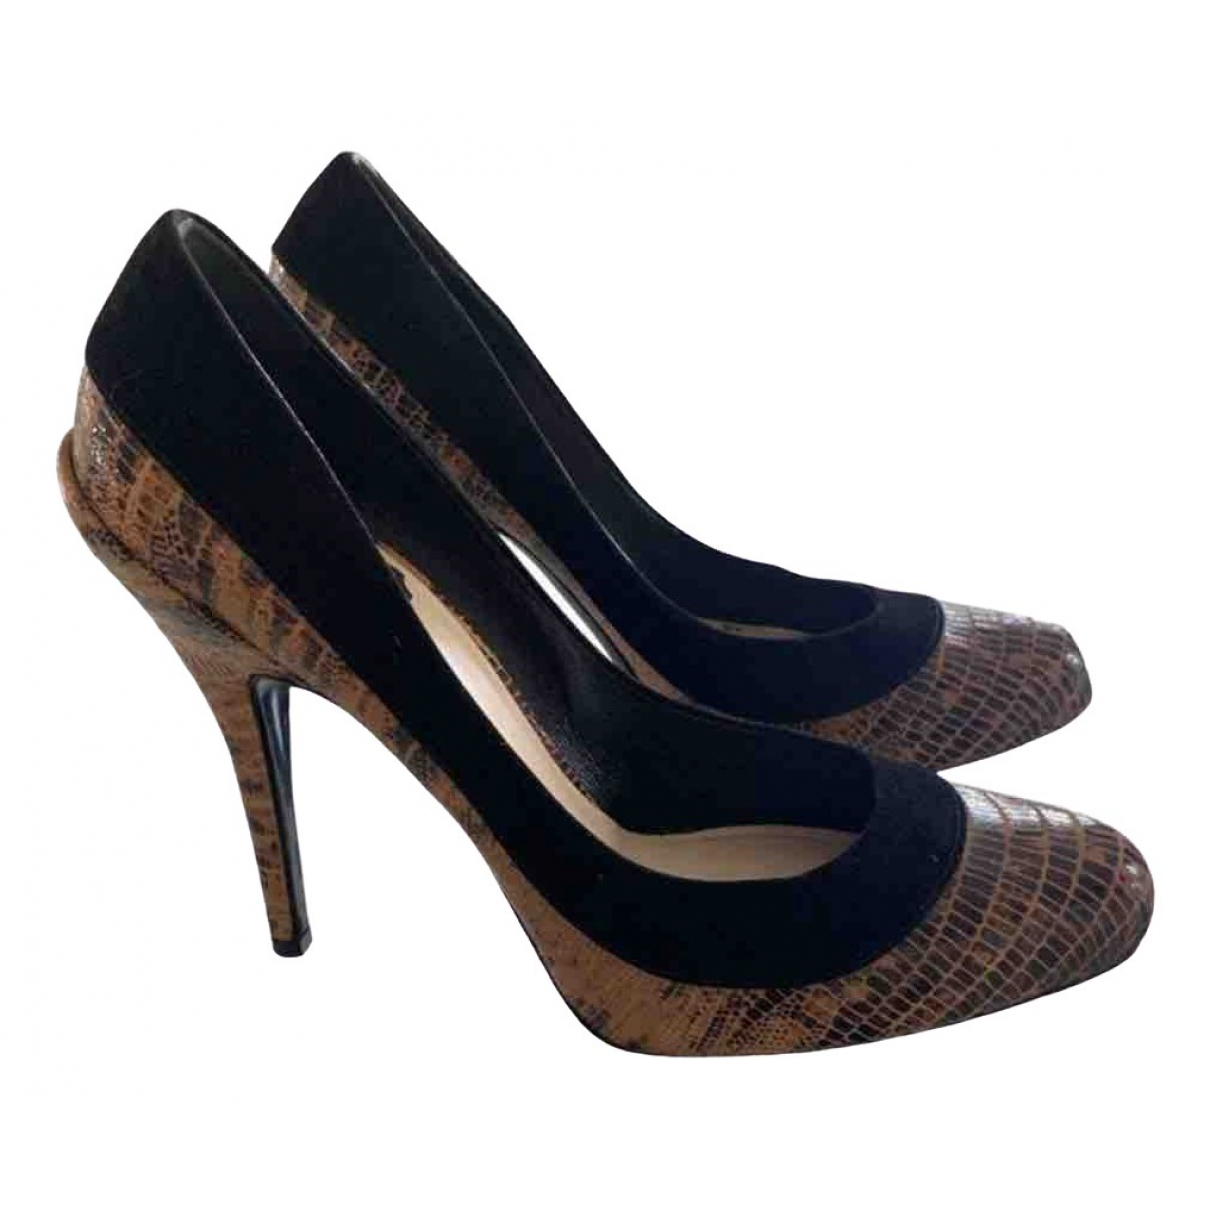 Dior \N Leather Heels for Women 36.5 IT